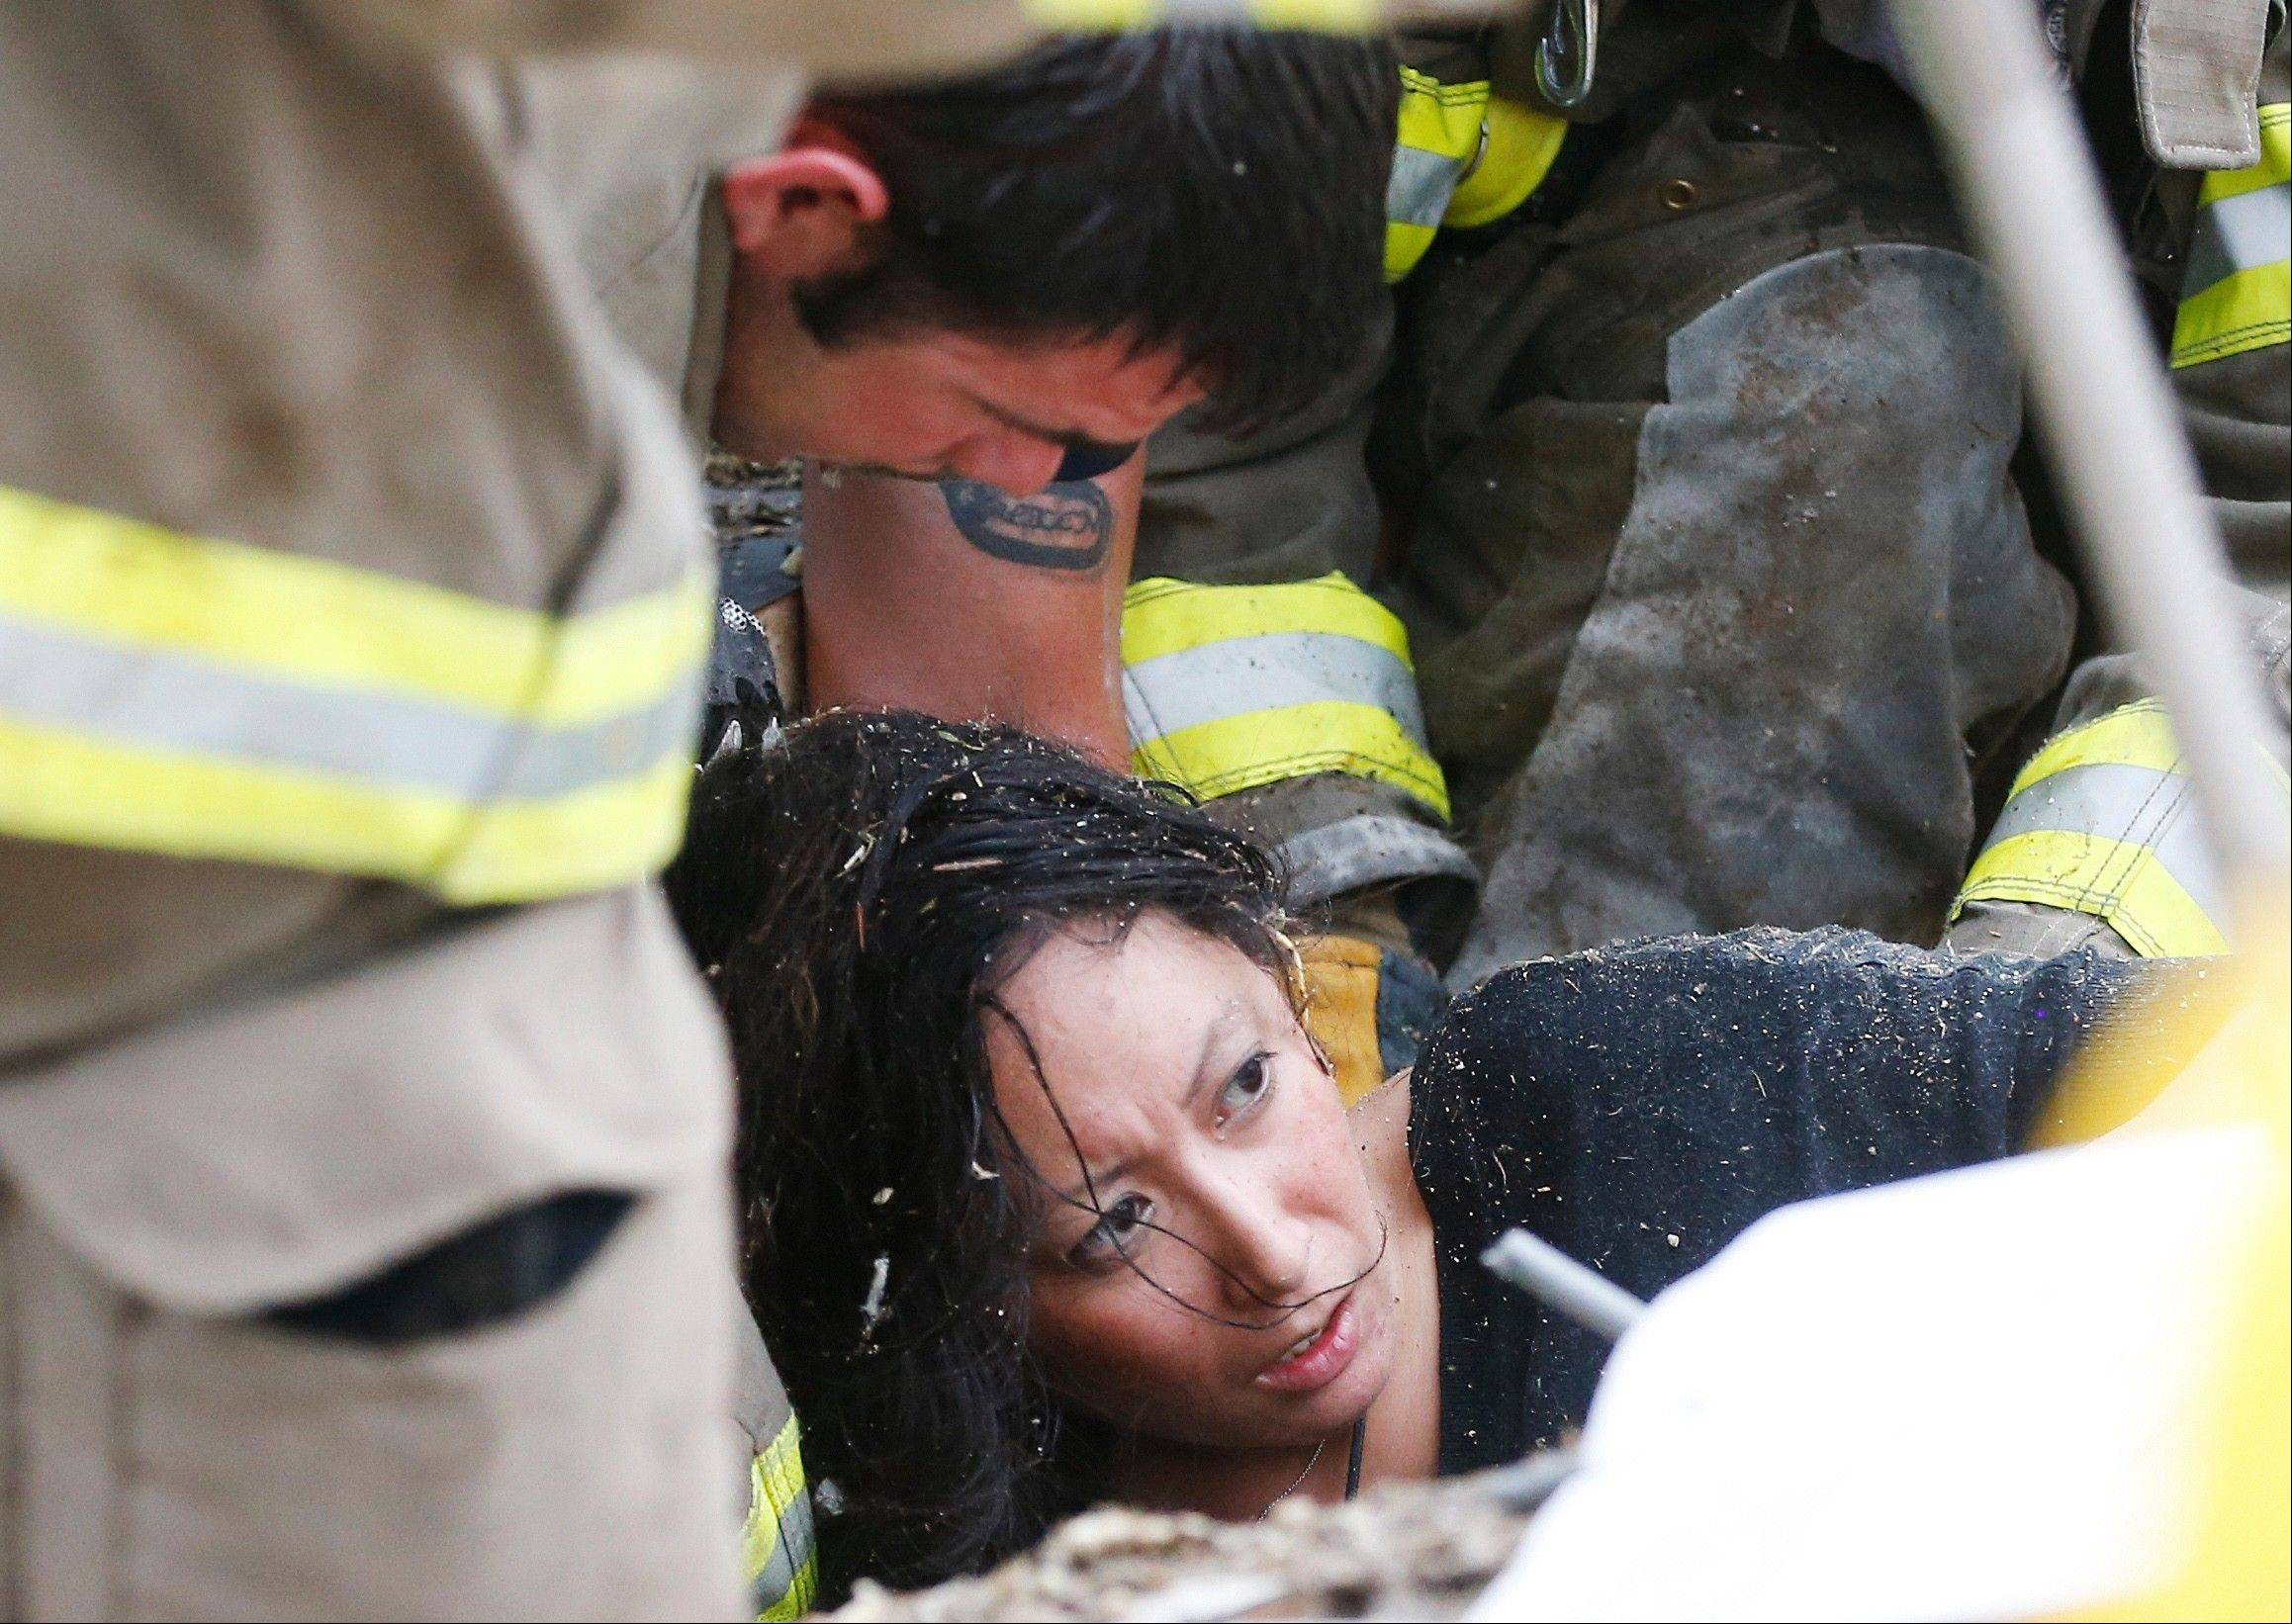 A woman is pulled out from under tornado debris at the Plaza Towers School in Moore, Okla., Monday, May 20, 2013. A tornado as much as a mile (1.6 kilometers) wide with winds up to 200 mph (320 kph) roared through the Oklahoma City suburbs Monday, flattening entire neighborhoods, setting buildings on fire and landing a direct blow on an elementary school.